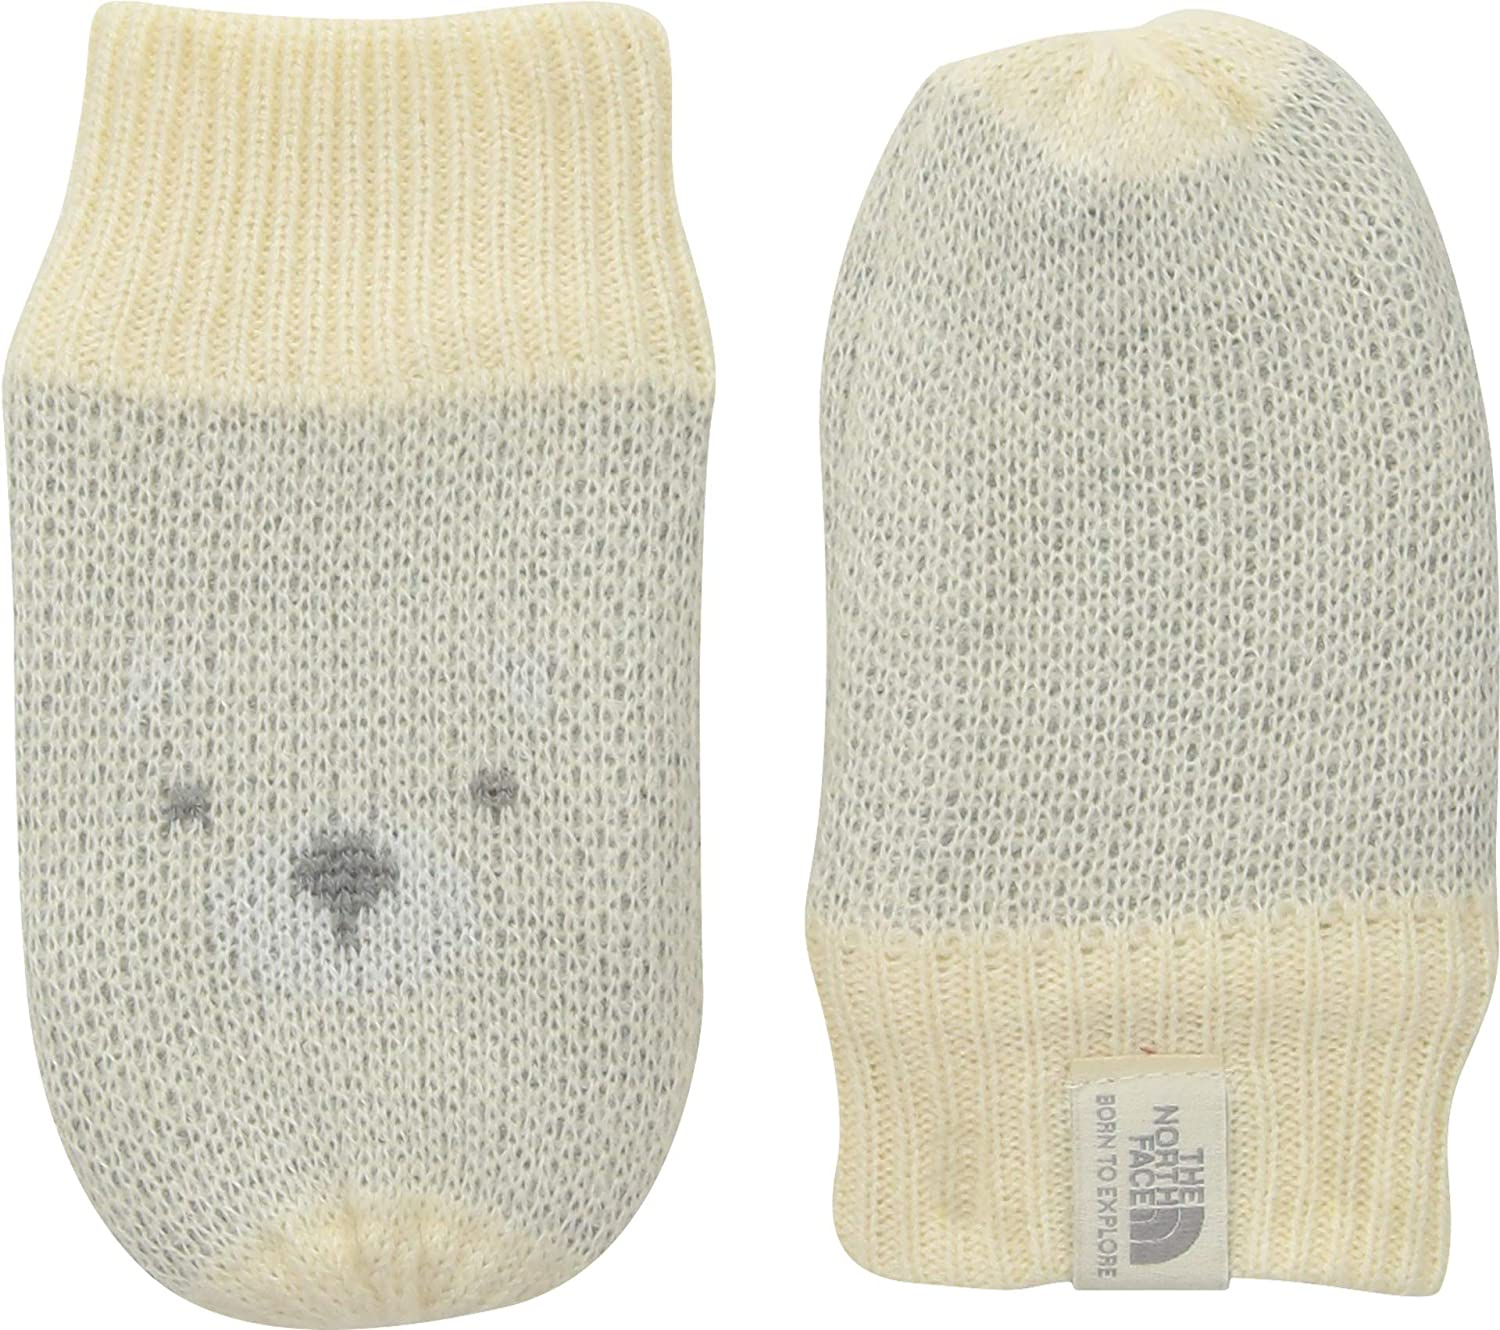 536d11632 The North Face Baby Faroe Mitt